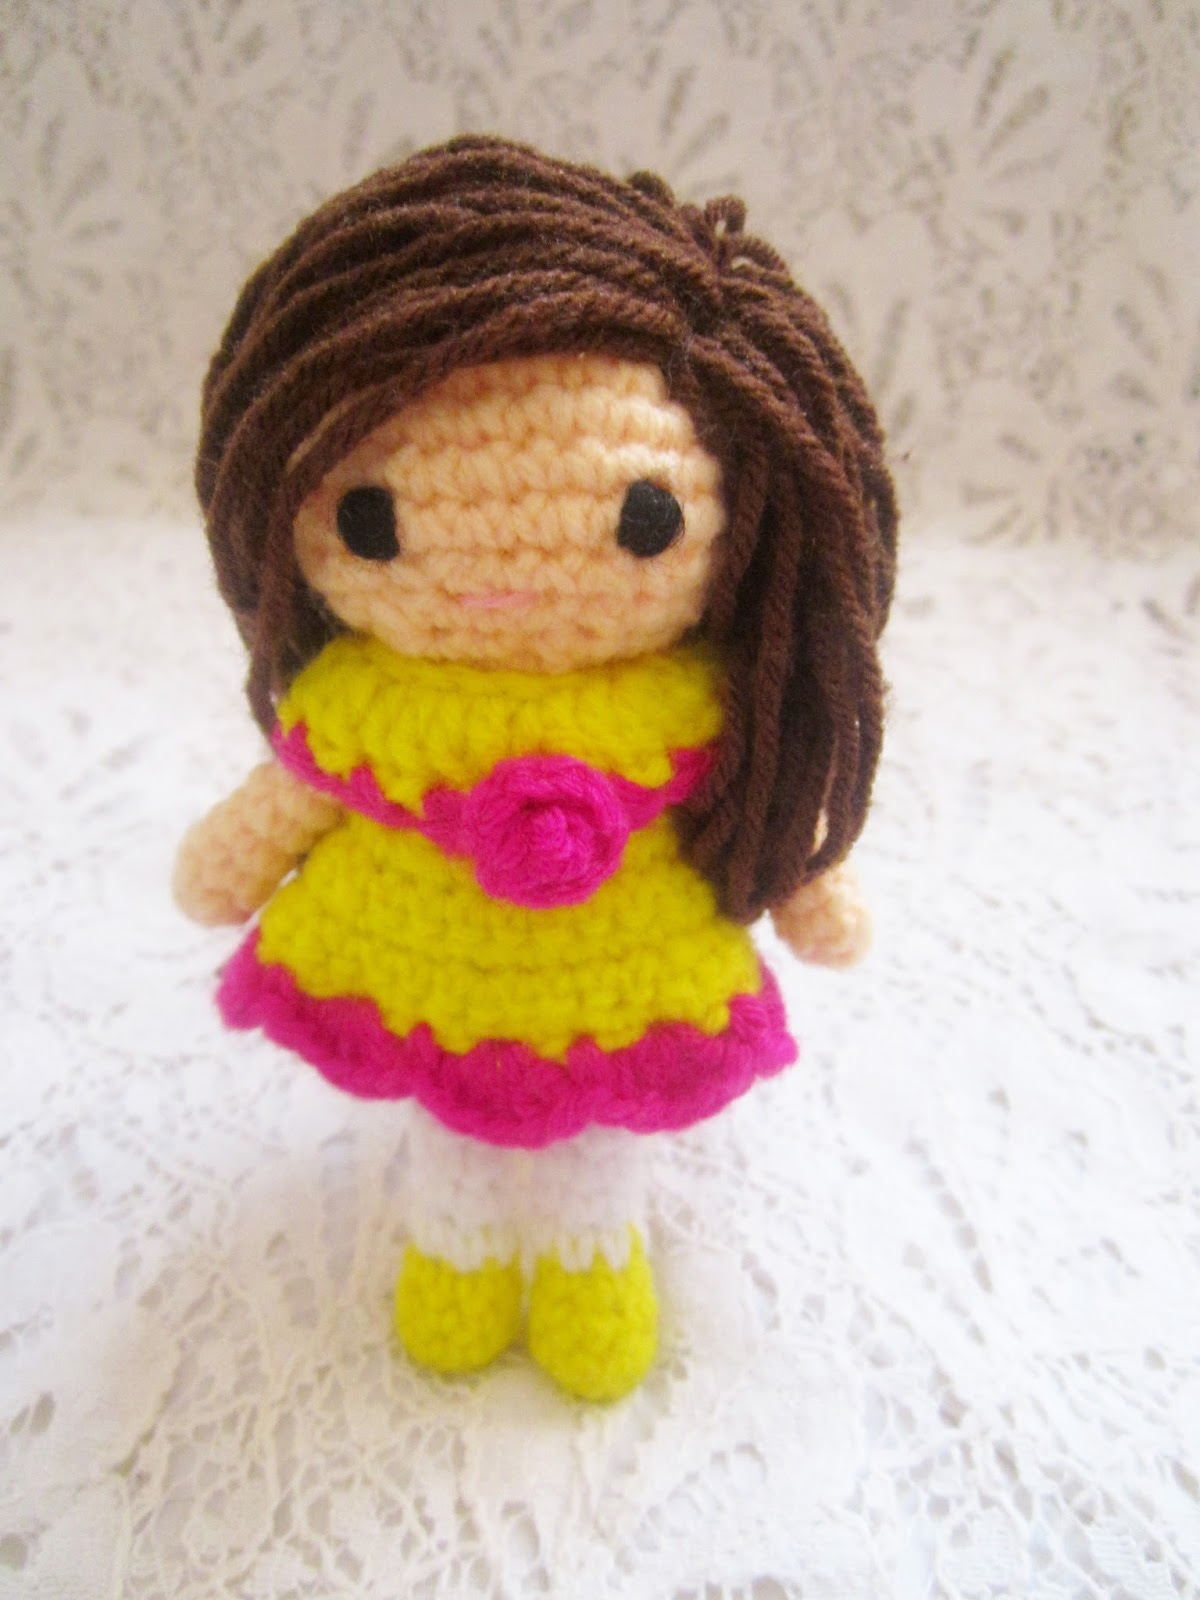 Amigurumi Pattern Dolls : Little Amigurumi doll pattern. - A little love everyday!